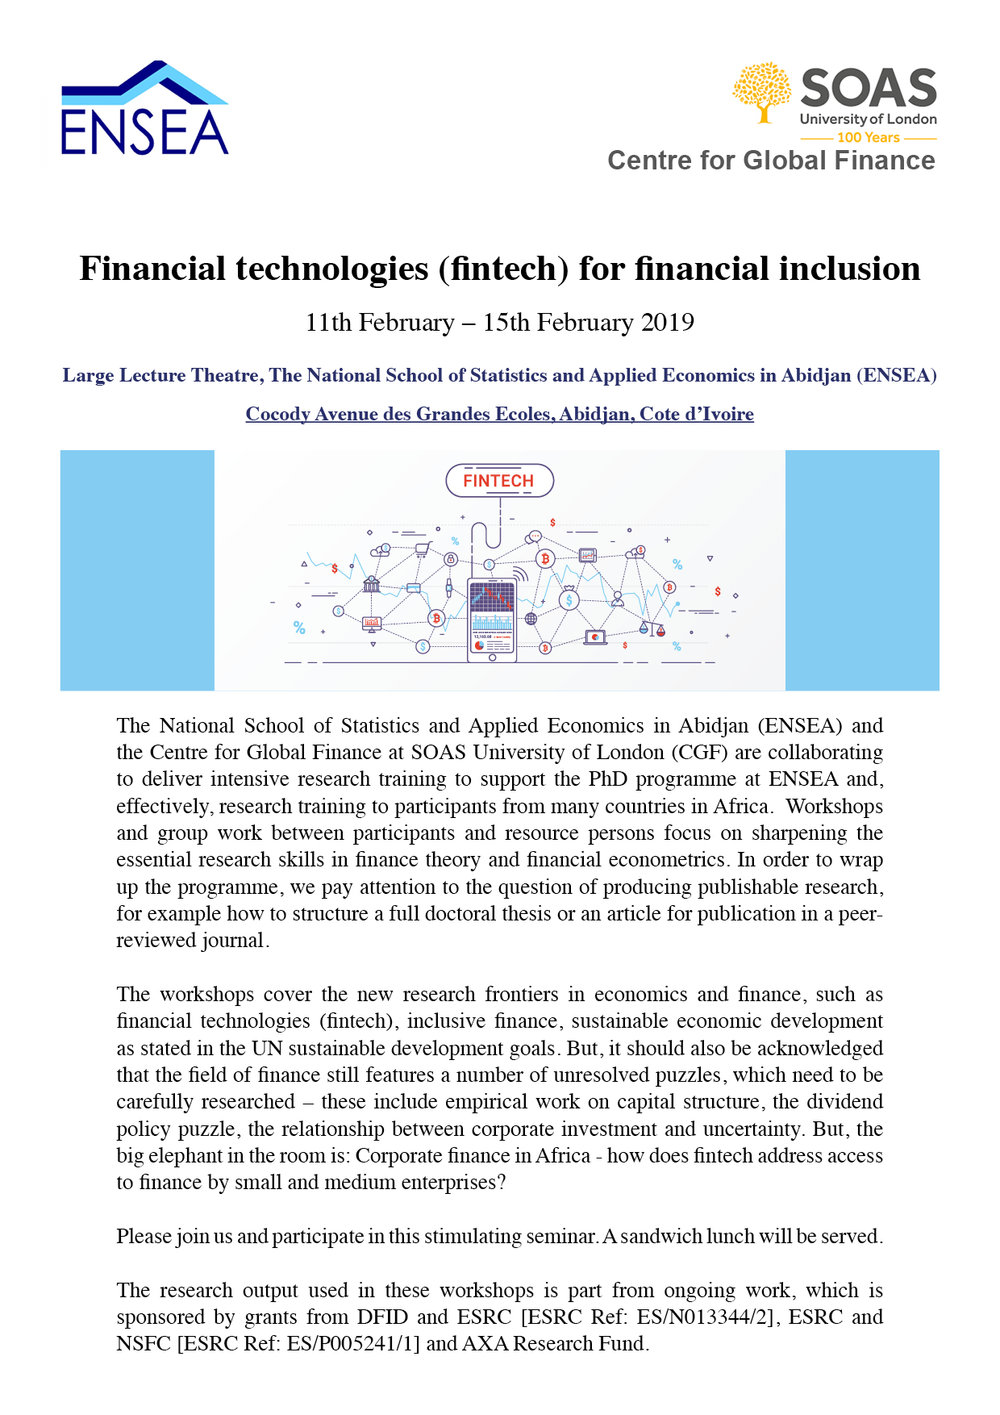 Fintech Workshop in Abdjan_flyer - Feb 2019.jpg